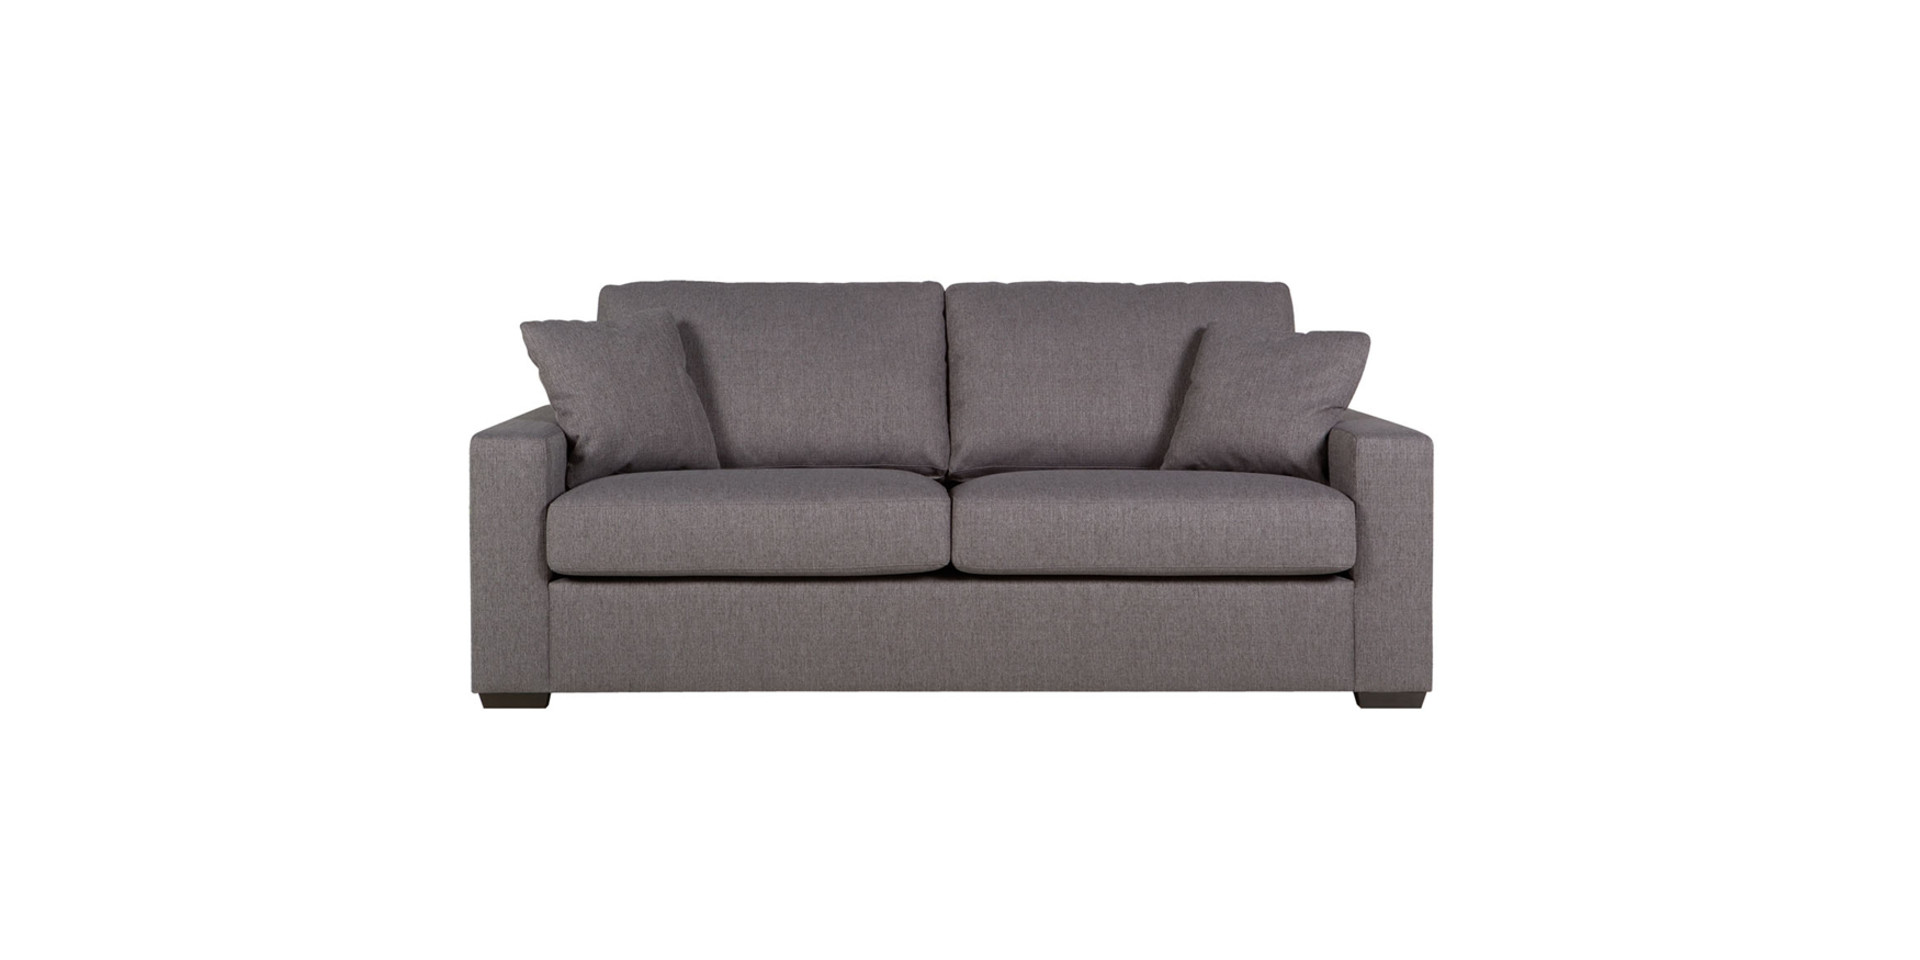 sits-phoenix-canape-3seater_cedros4_dark_grey_1